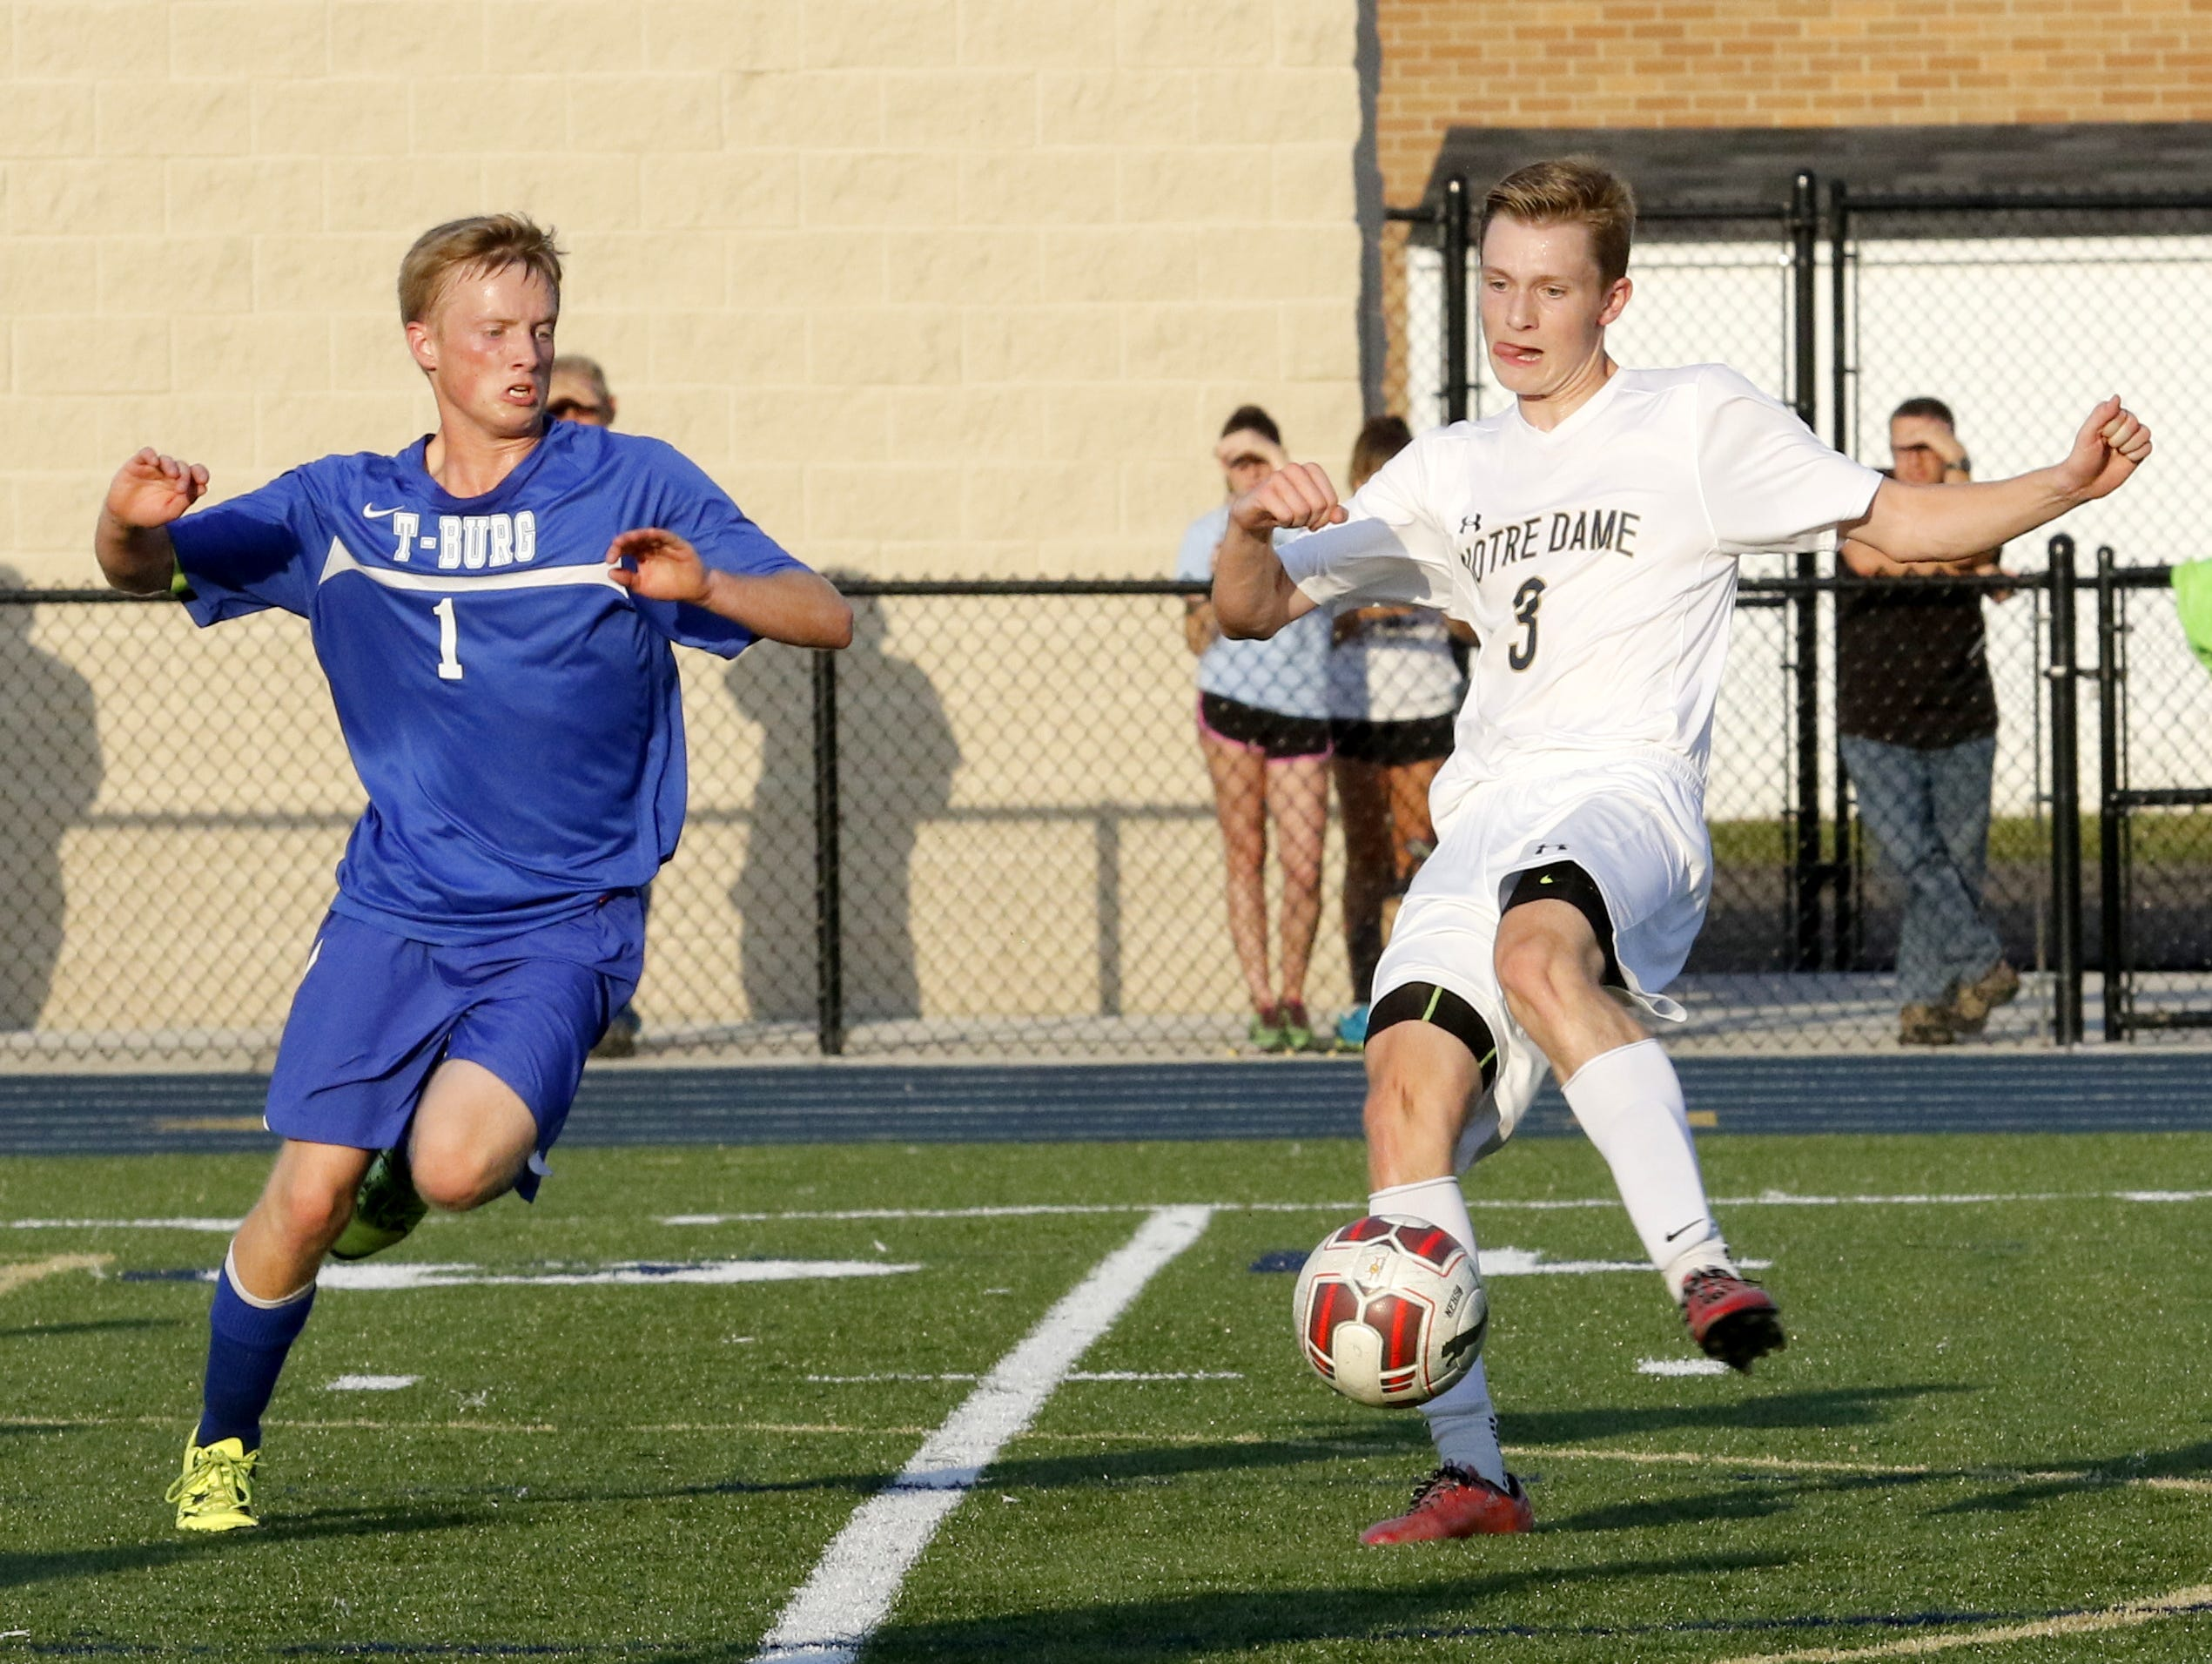 Alec Cutler of Notre Dame controls the ball as Danny Lapp of Trumansburg closes in Thursday during boys soccer at Brewer Memorial Stadium.